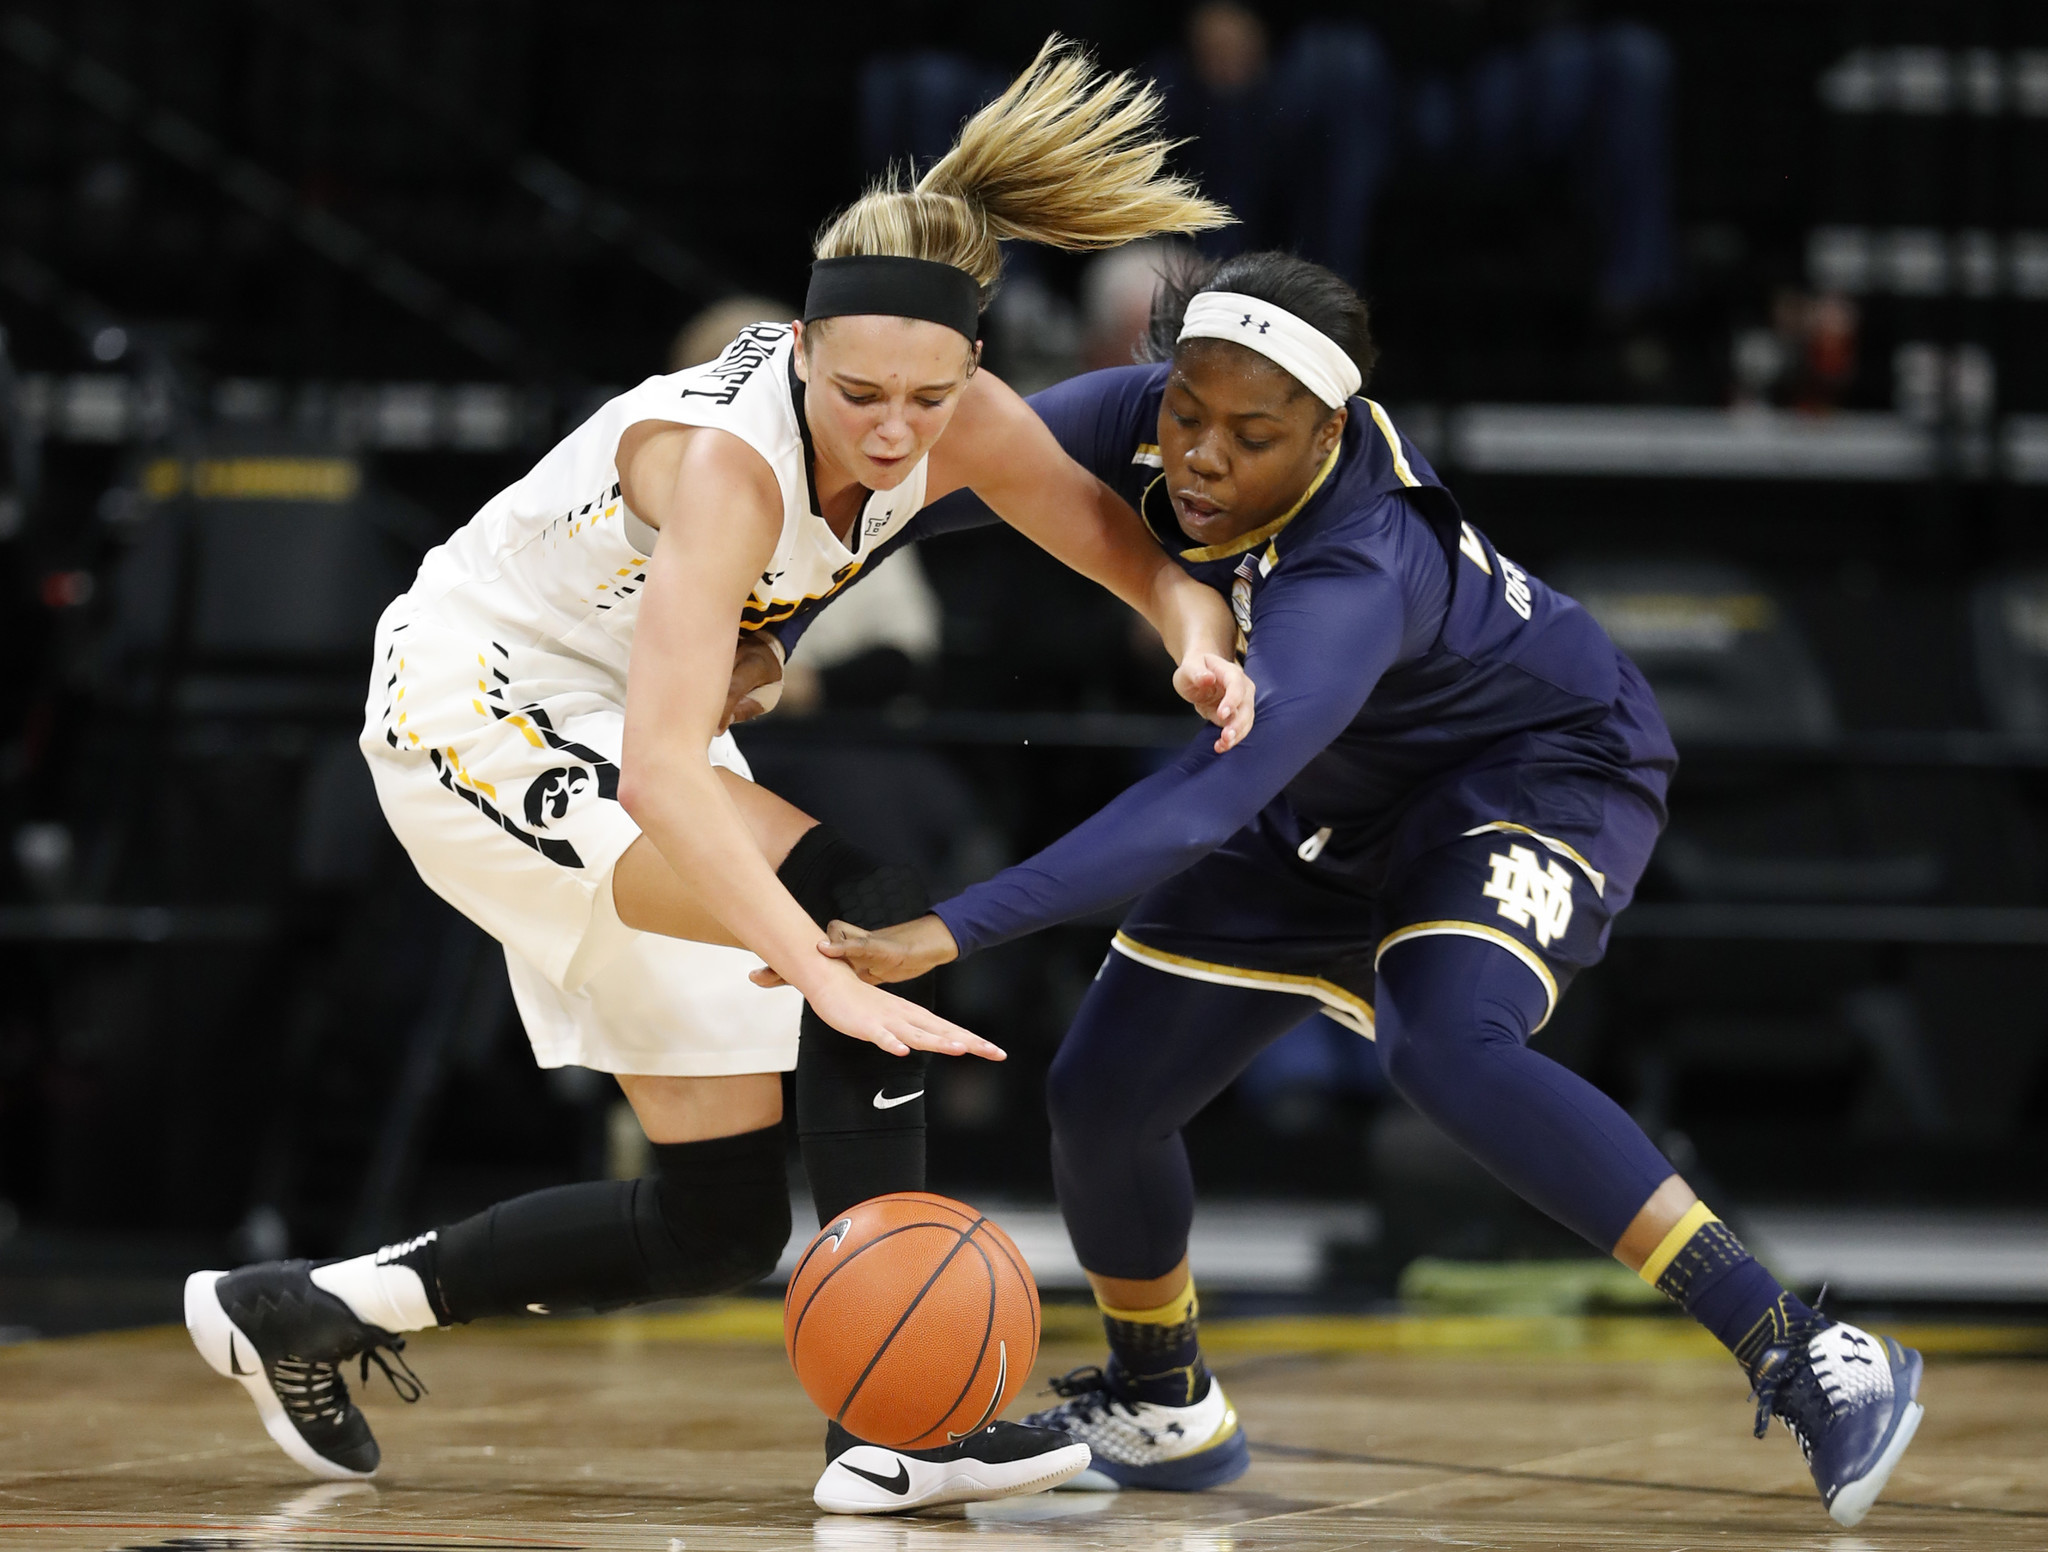 Ct-local-college-basketball-roundup-spt-20161130